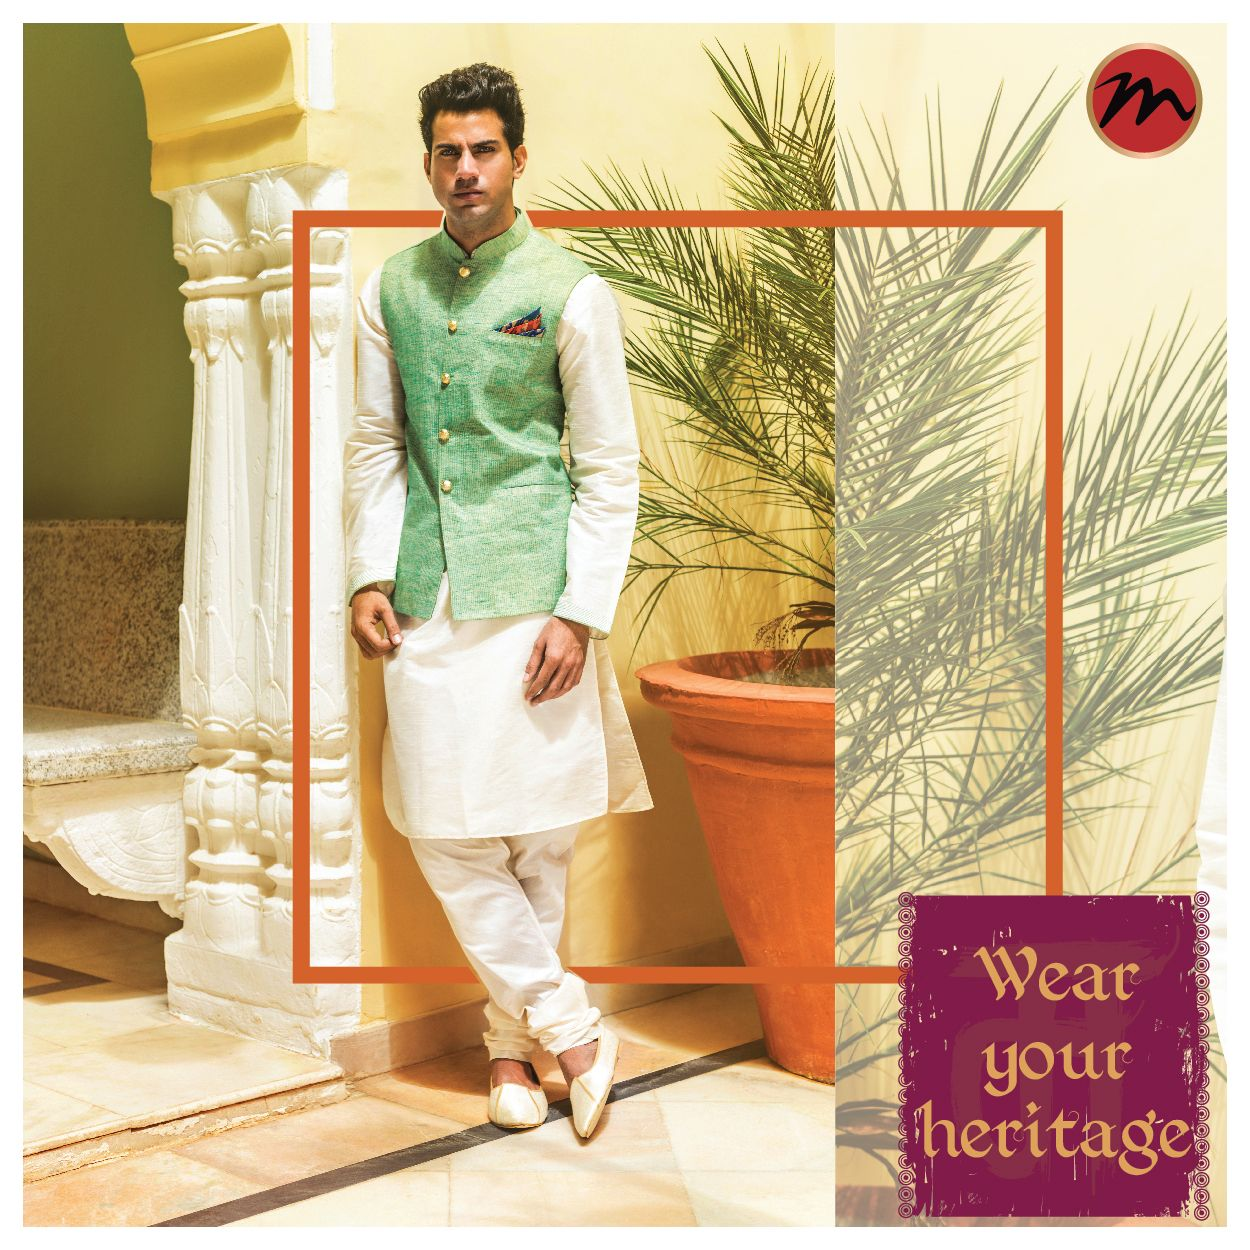 Let the passionate colours of our heritage define you #manishcreations #heritagefashion #wearwithpride #traditionalwear #coloursofheritage